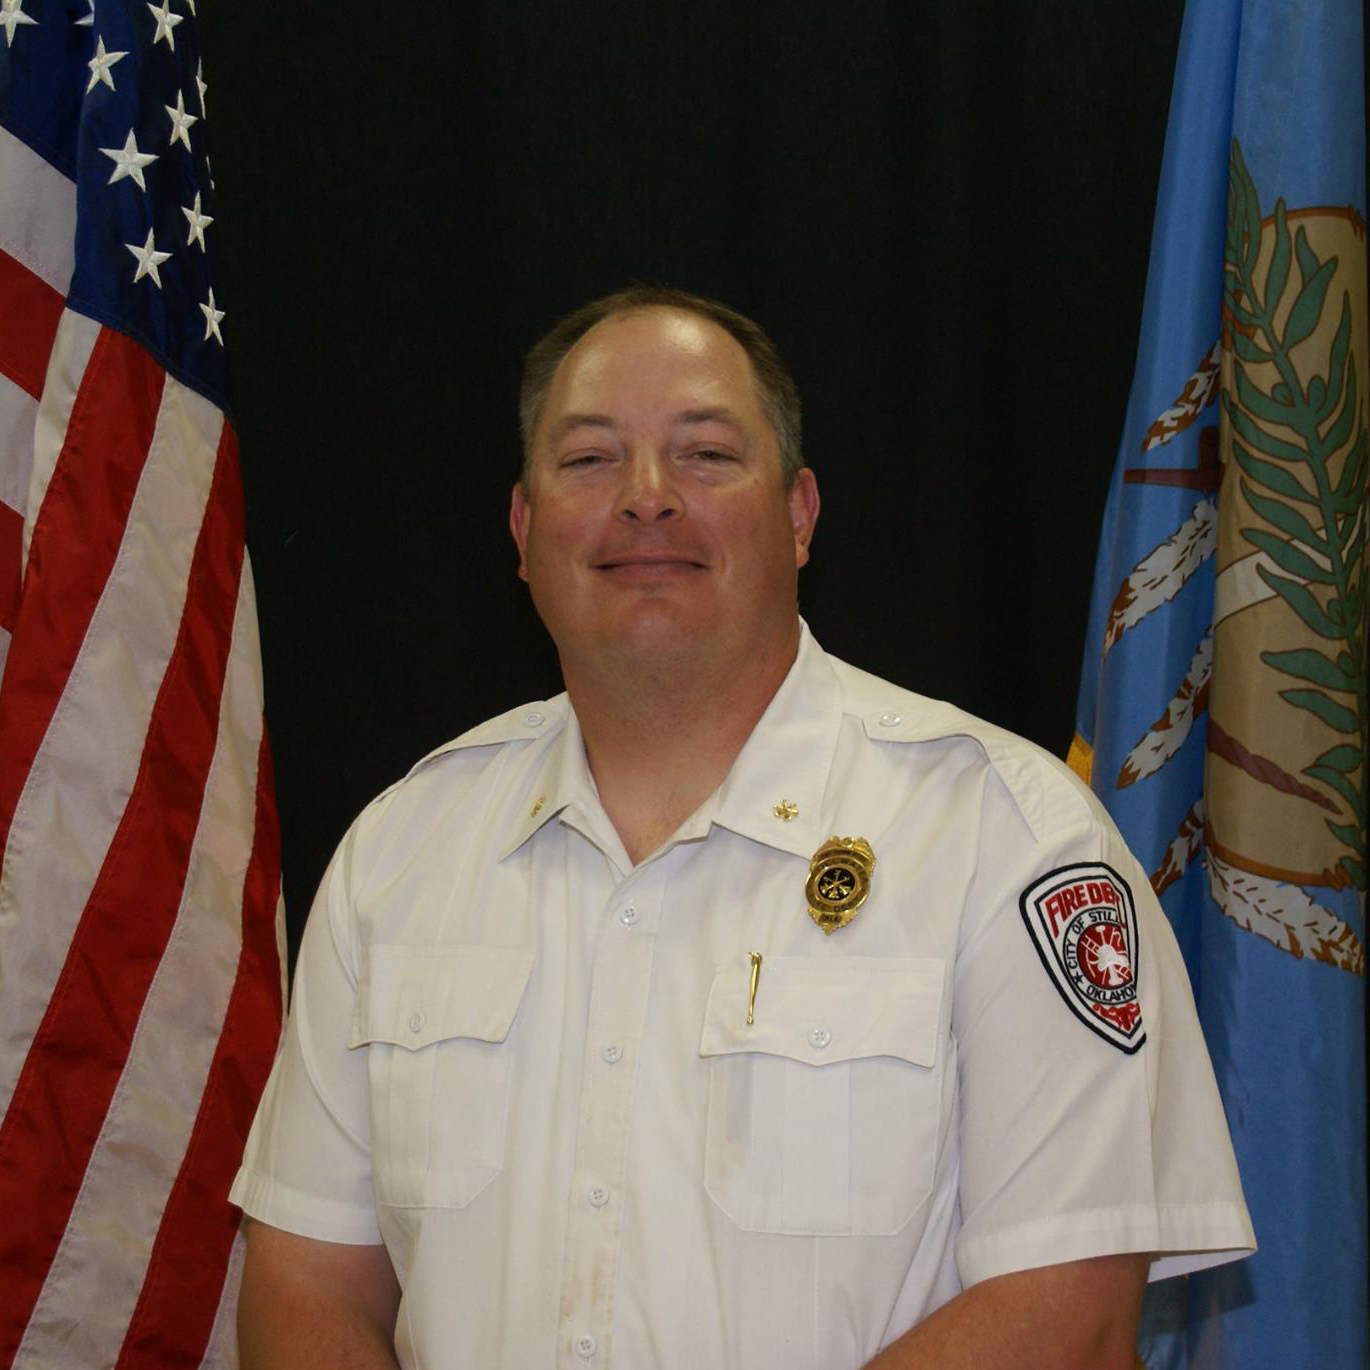 Photo of Assistant Fire Chief Jory Stanley